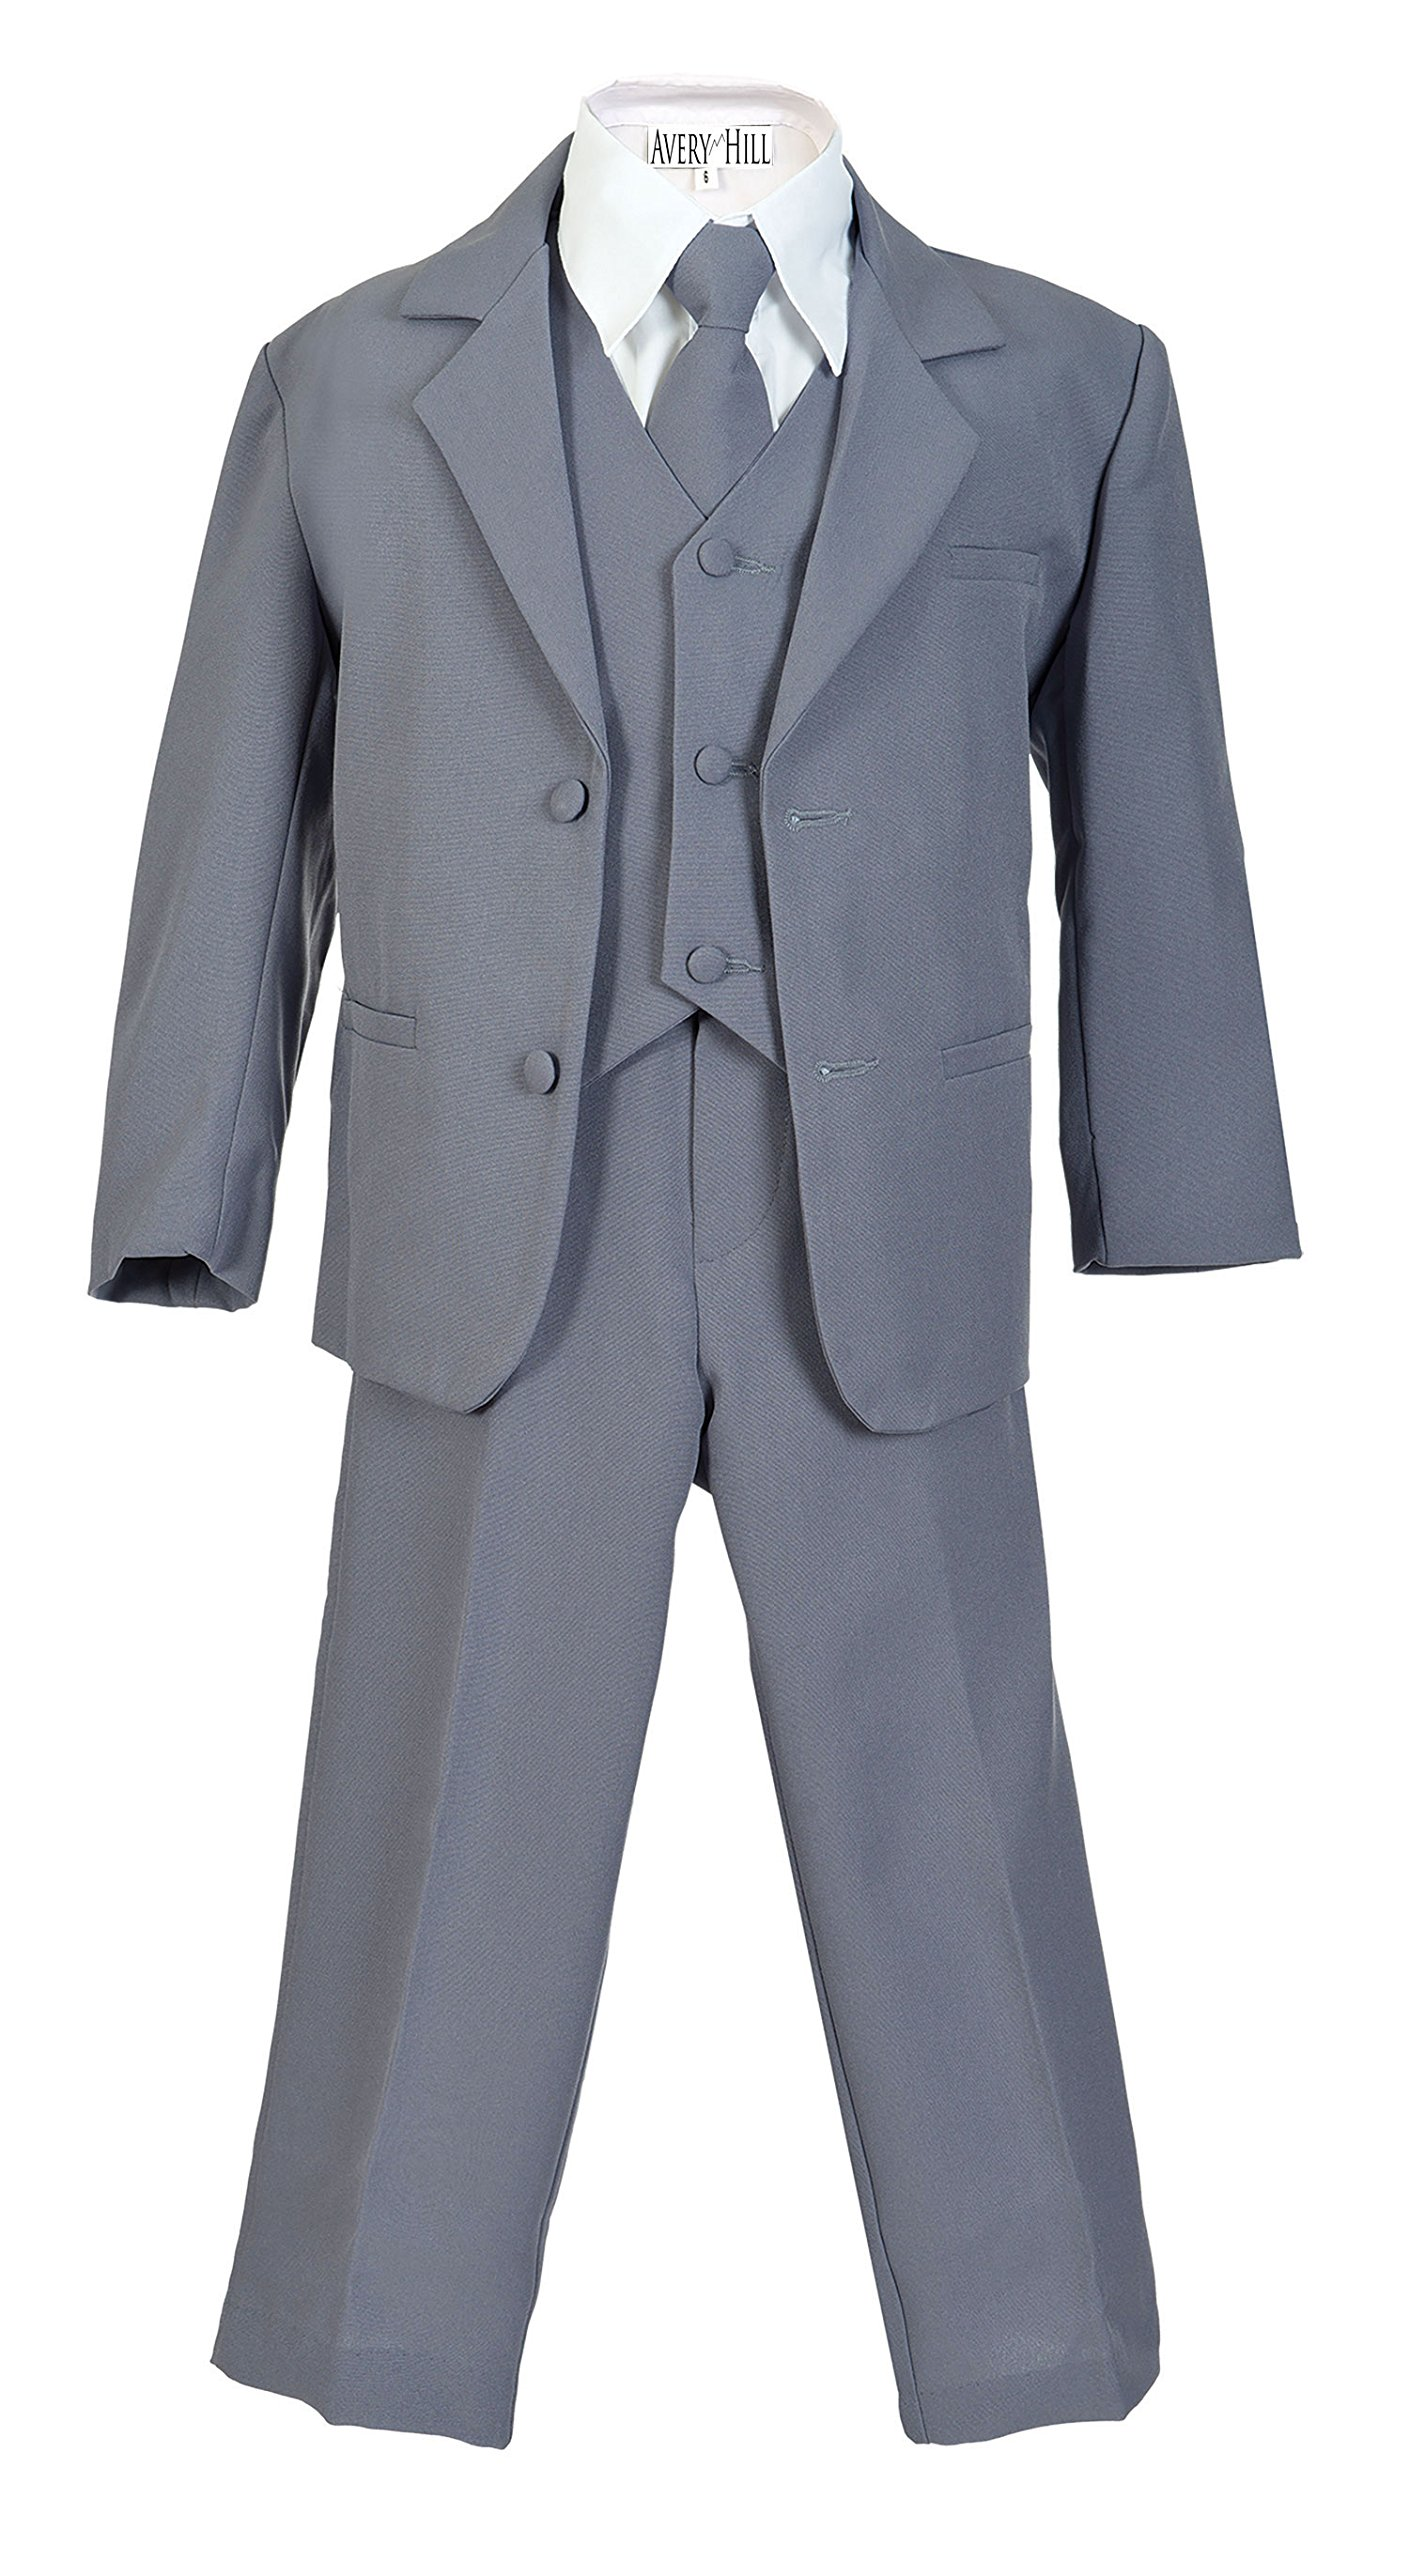 Avery Hill Boys Formal 5 Piece Suit with Shirt and Vest SLATEGY 6